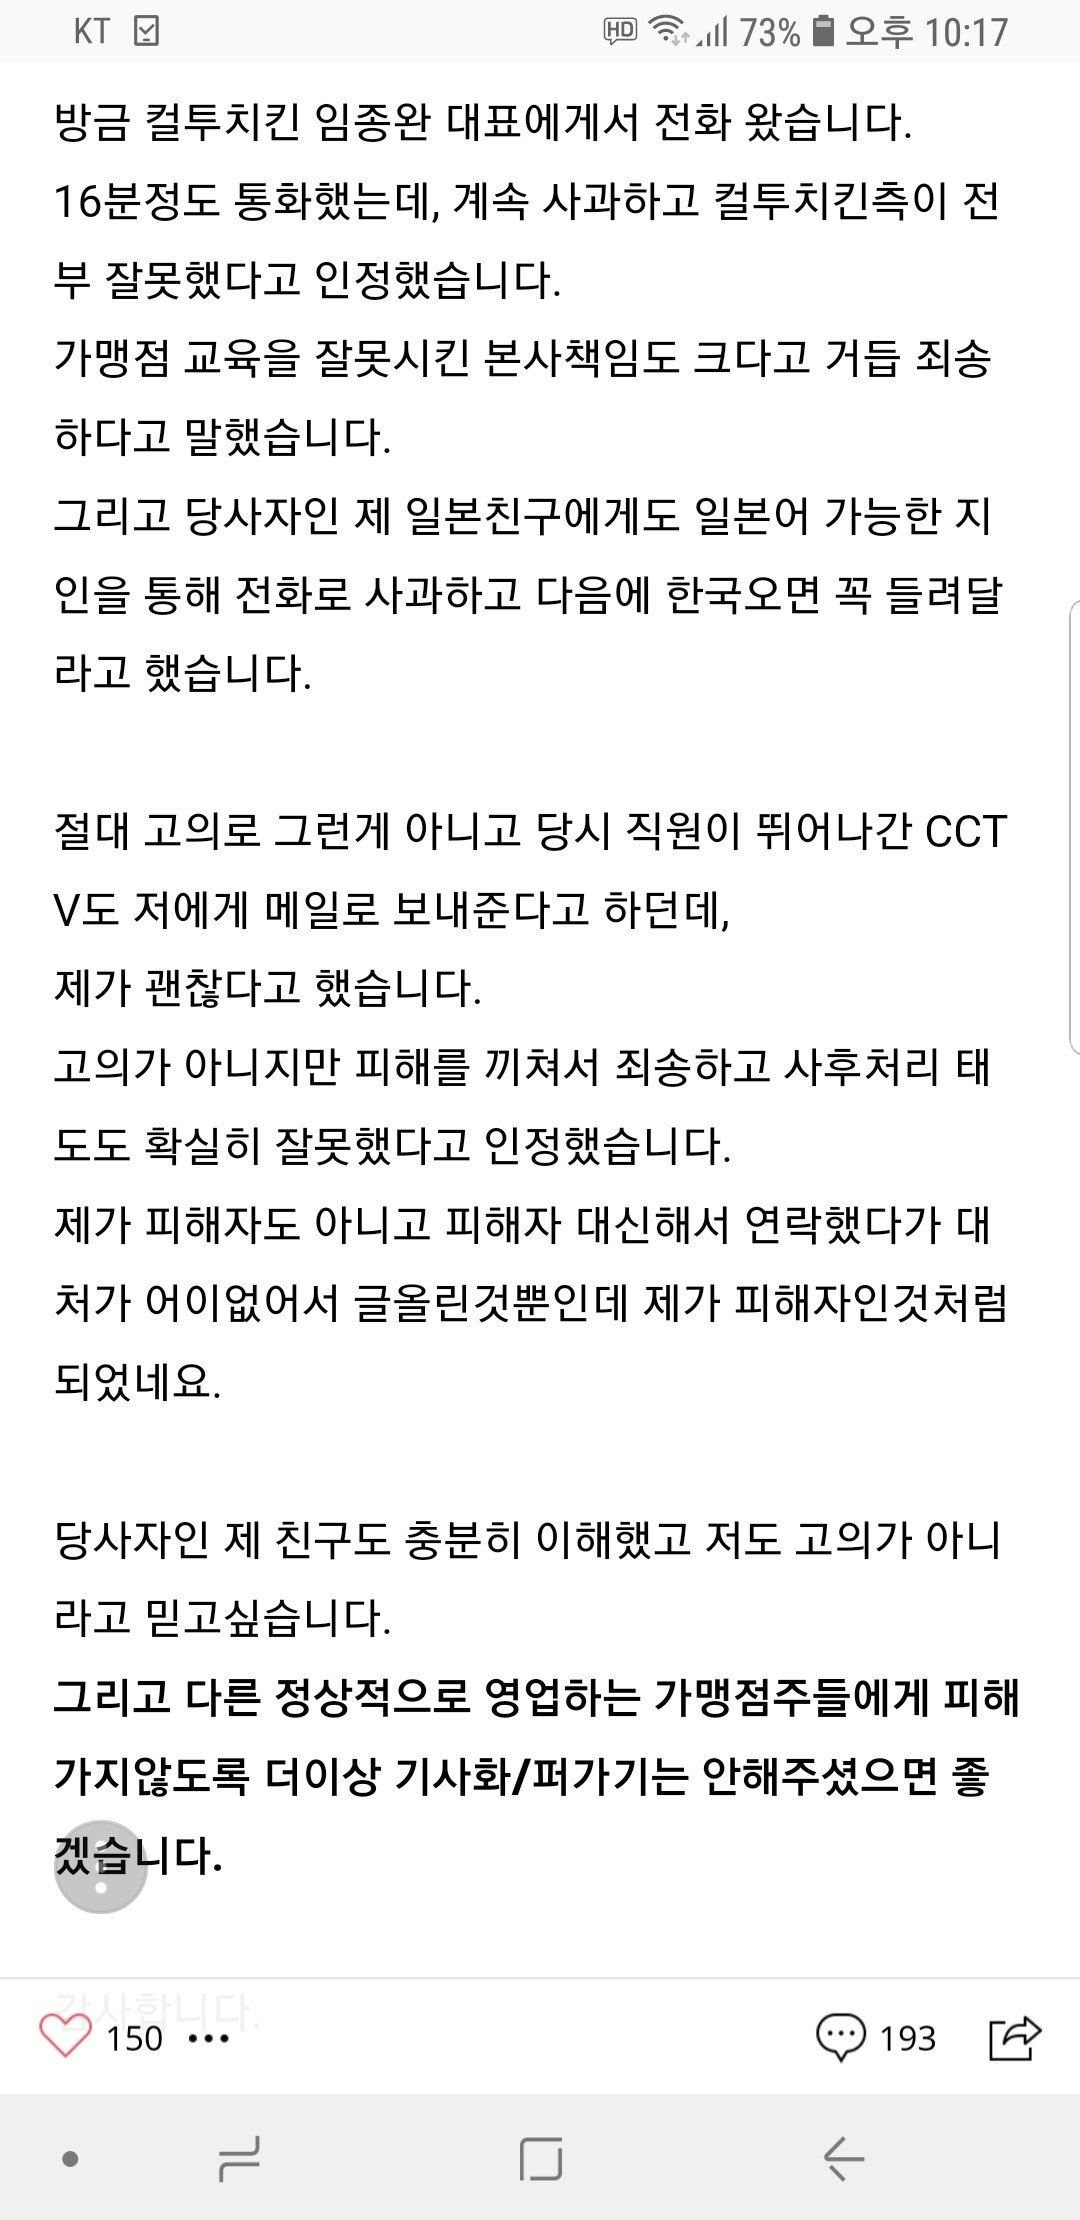 Screenshot_20180516-221715_Samsung Internet.jpg 컬투치킨 사건 해결됨 JPG